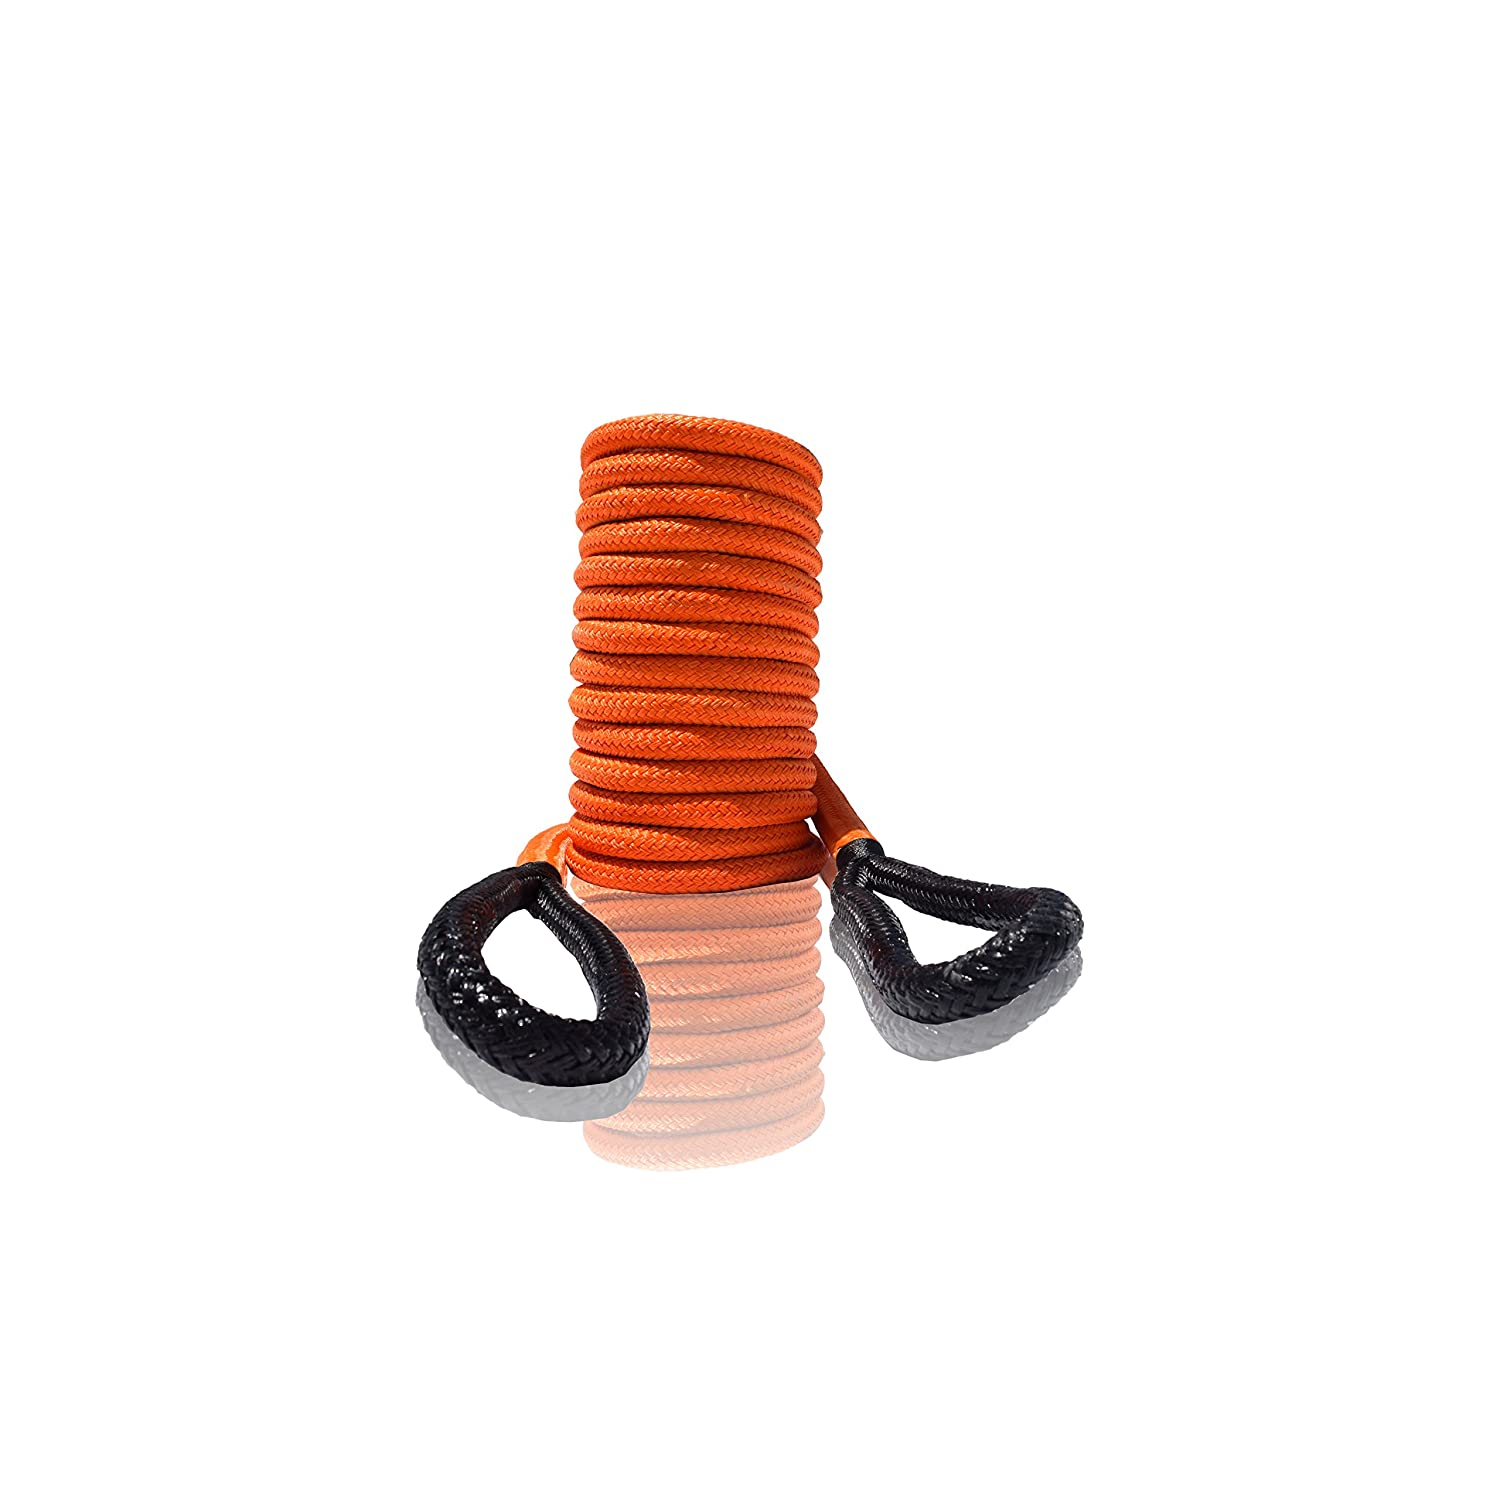 QIQU Kinetic Recovery /& Tow Rope Heavy Duty Vehicle Tow Strap Rope for Truck ATV UTV SUV Snowmobile and 4x4 Off-Road Recovery 3 Size to Choose 3//4x30, Orange 1//2/'/'//3//4/'/'//1/'/' 3 Color